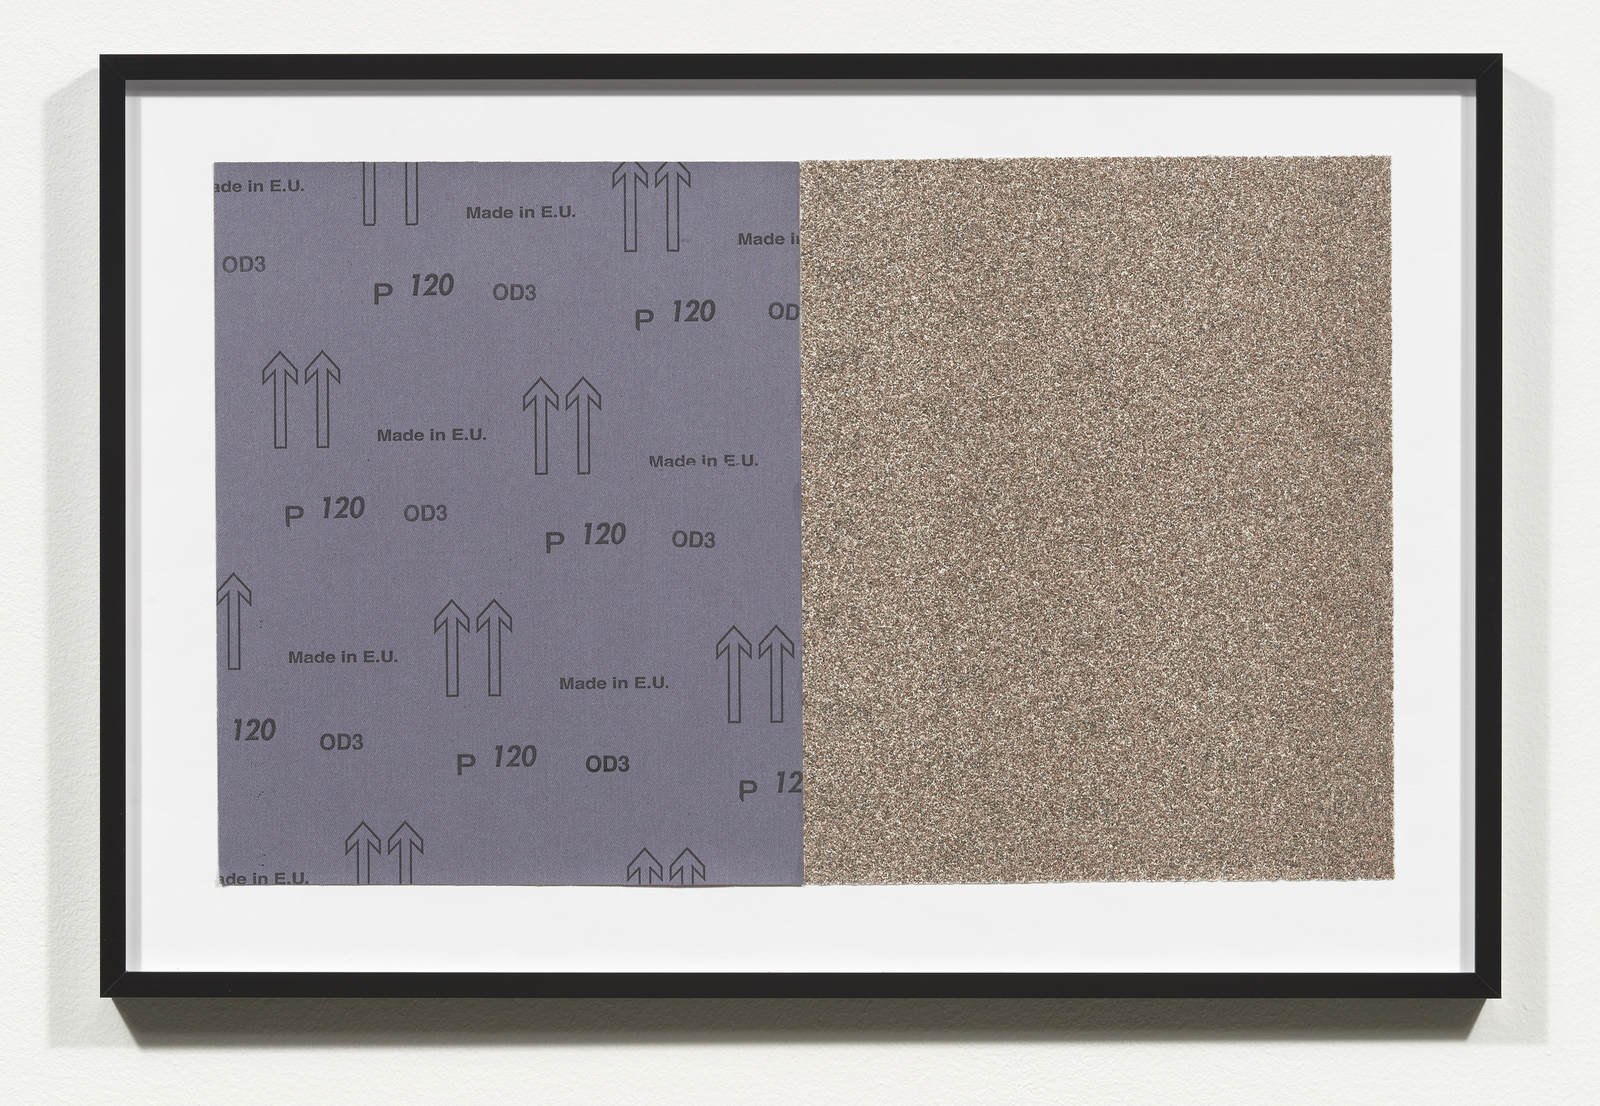 Wermers_Croissants & Architecture #30, 2016_C-print, sandpaper sheet, framed_14 3_8 x 21 1_2 in_NW0004PG